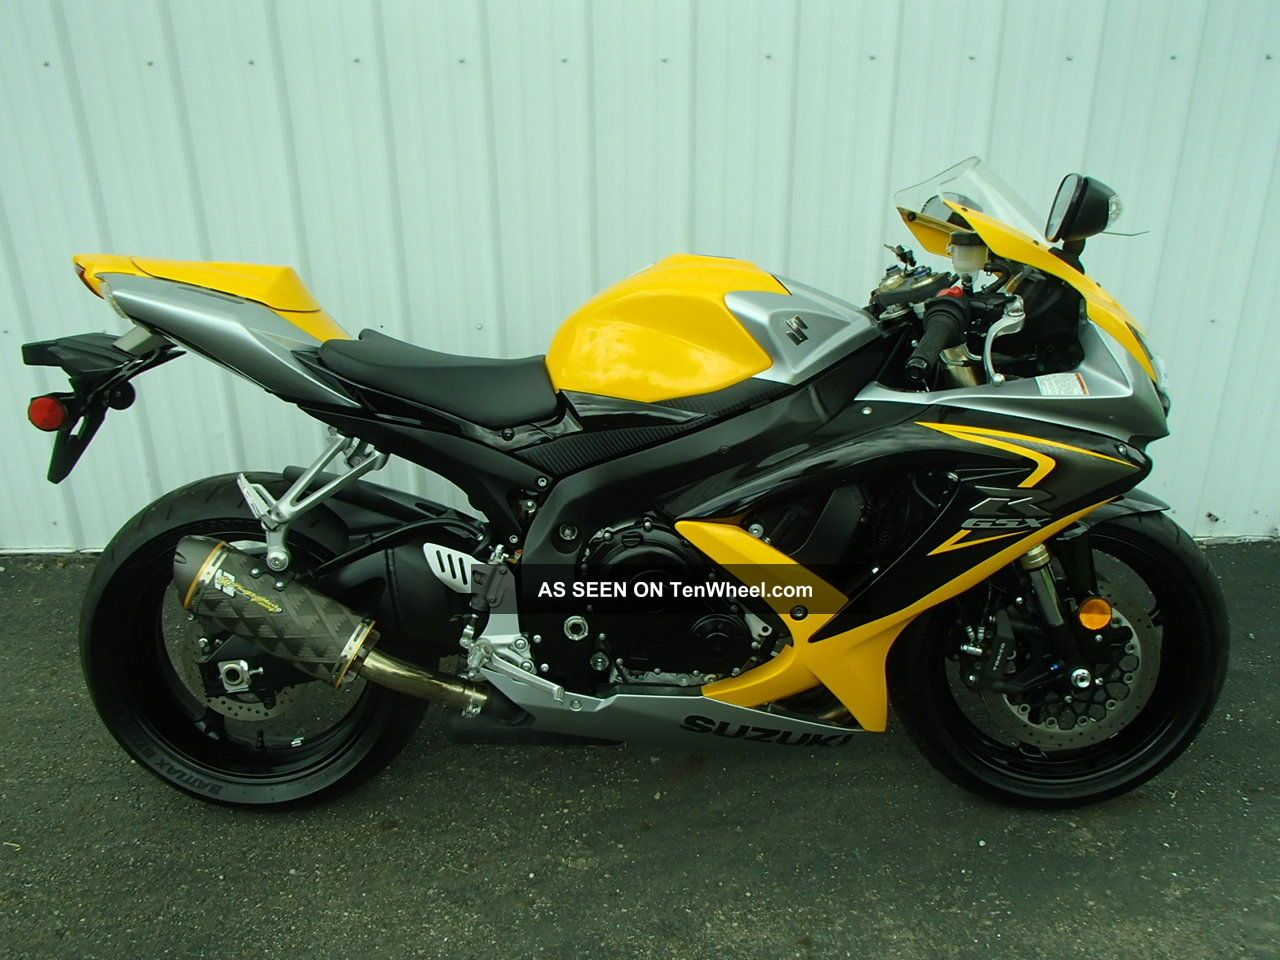 2008 suzuki gsx r 600 yellow um20207rg. Black Bedroom Furniture Sets. Home Design Ideas